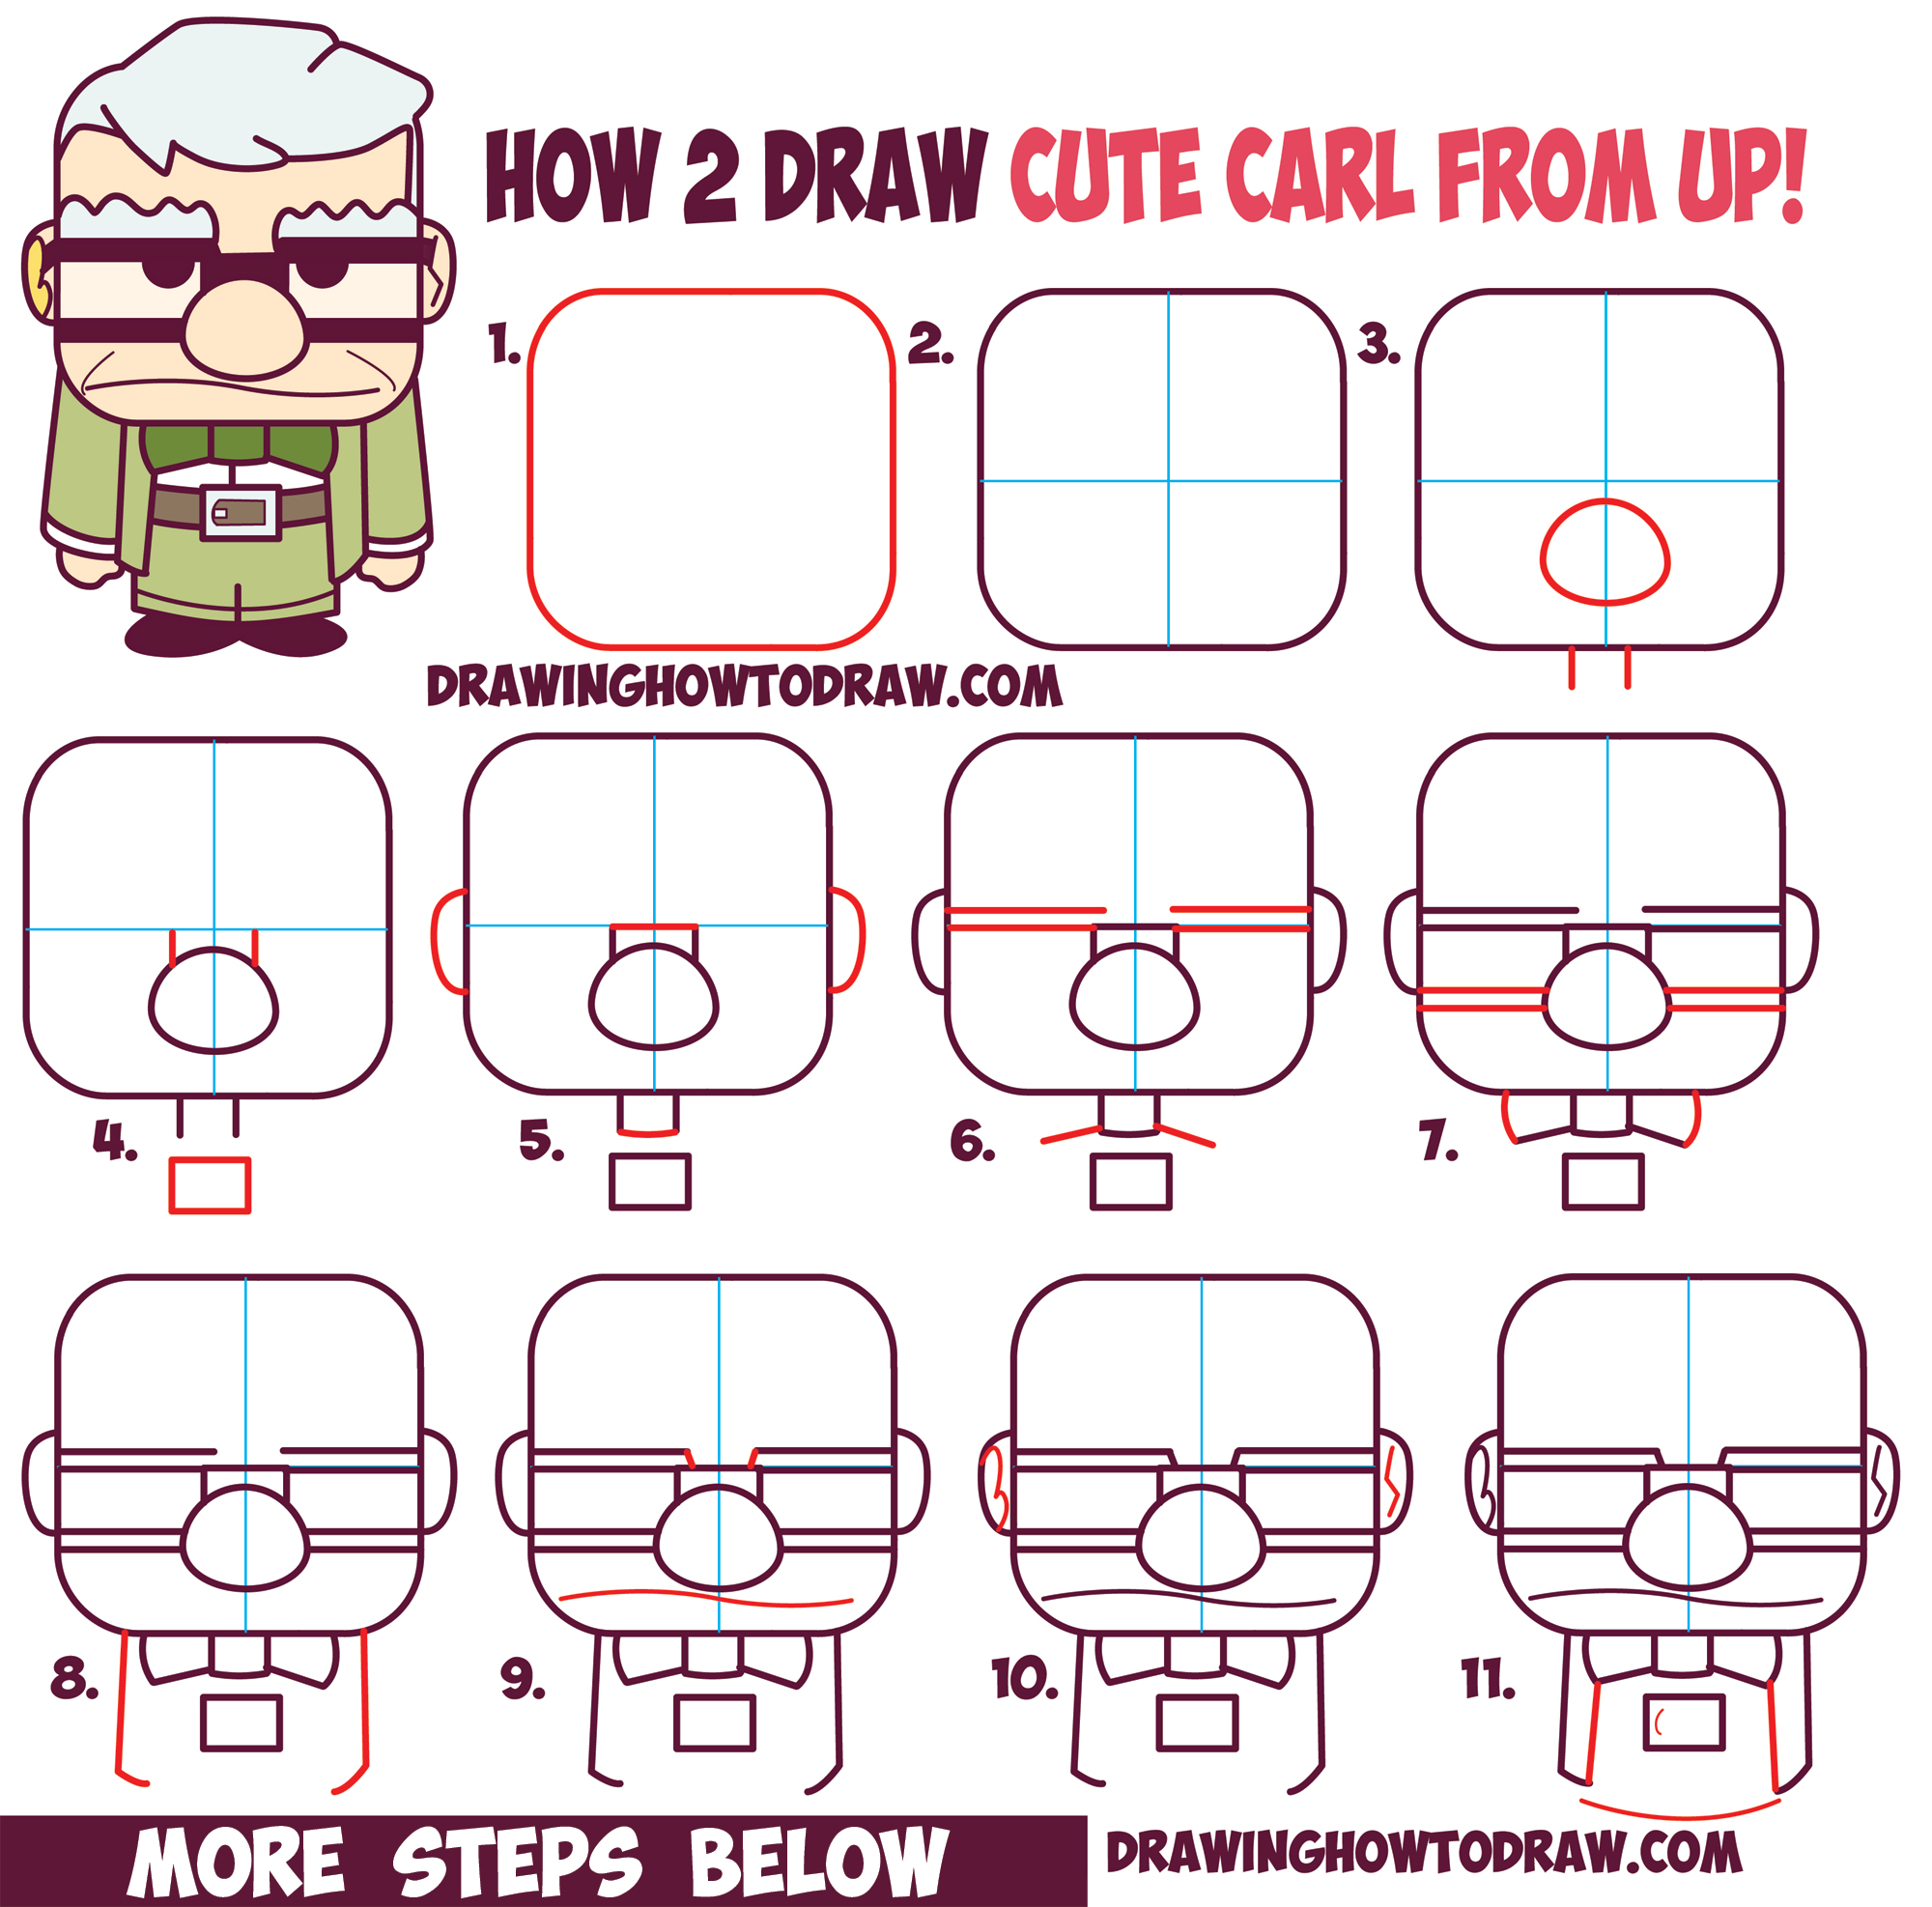 How to Draw Carl Fredricksen the Old Man from Pixar's Up (Cute / Chibi) Easy Drawing Tutorial for Kids